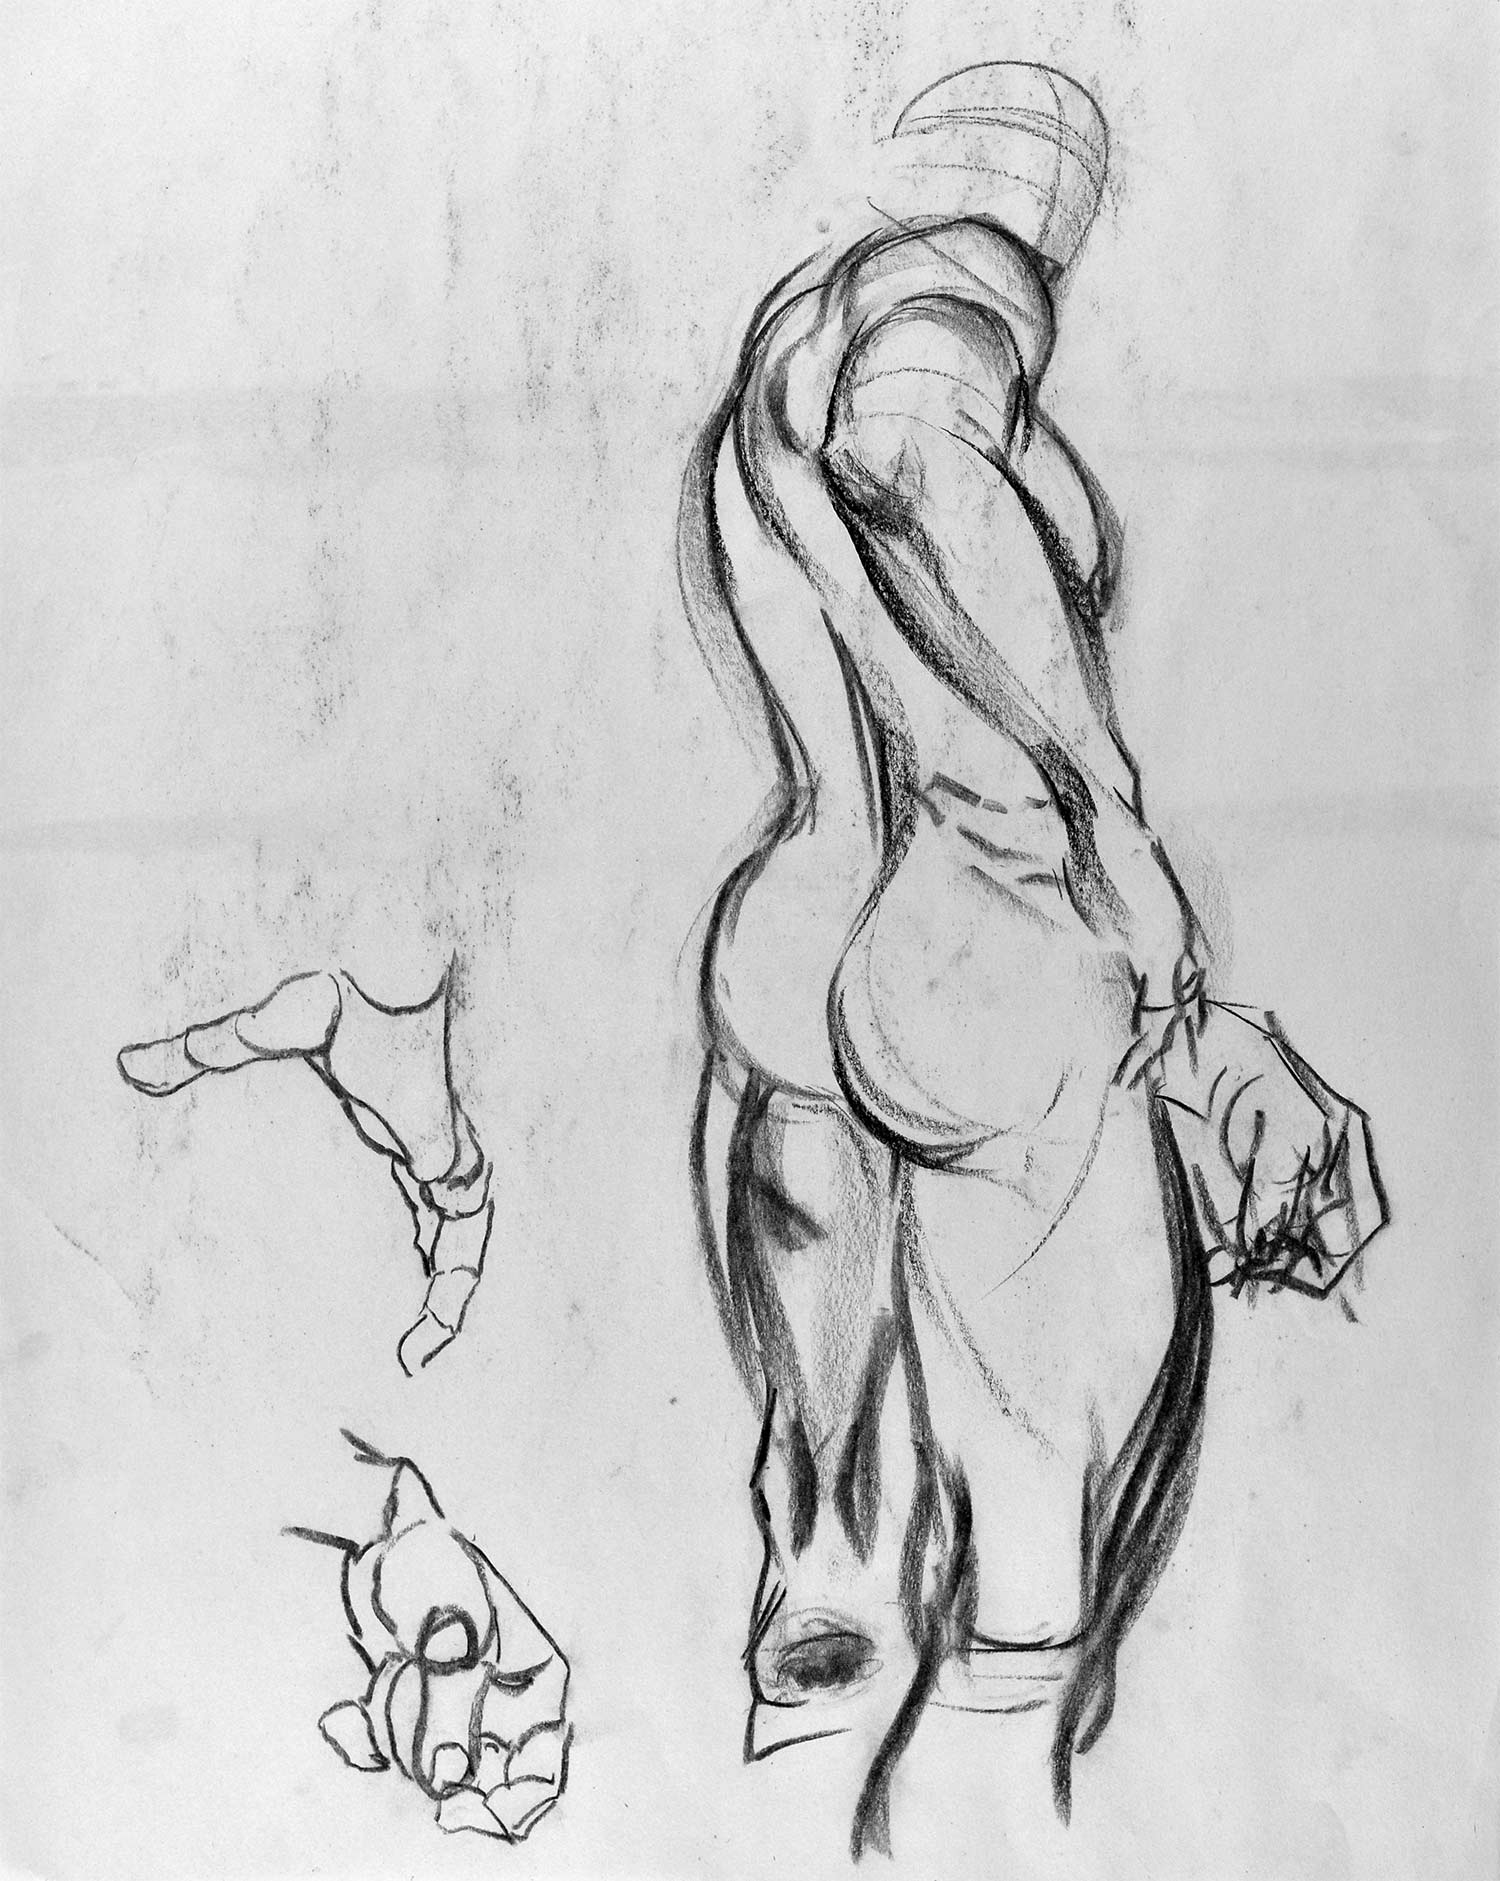 course-figure-drawing-works-15-v01-2018-08.jpg